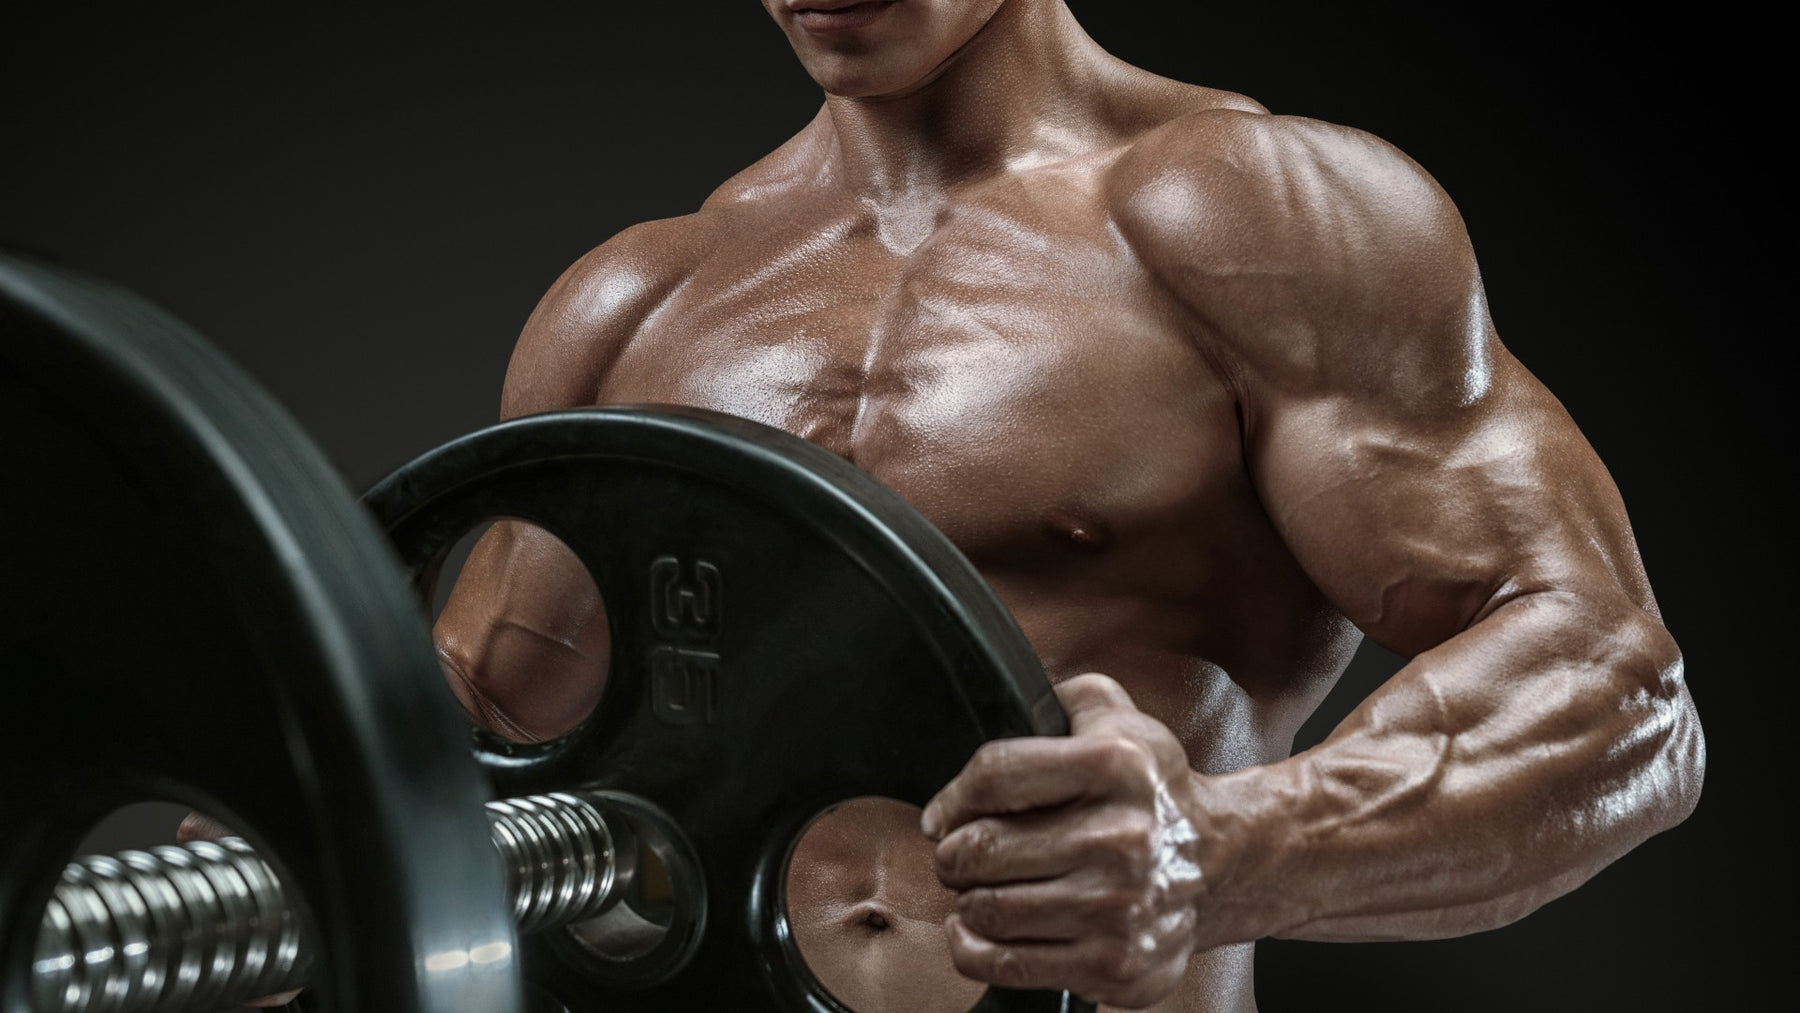 Gain Muscle Mass Fast With These 3 Proven Methods